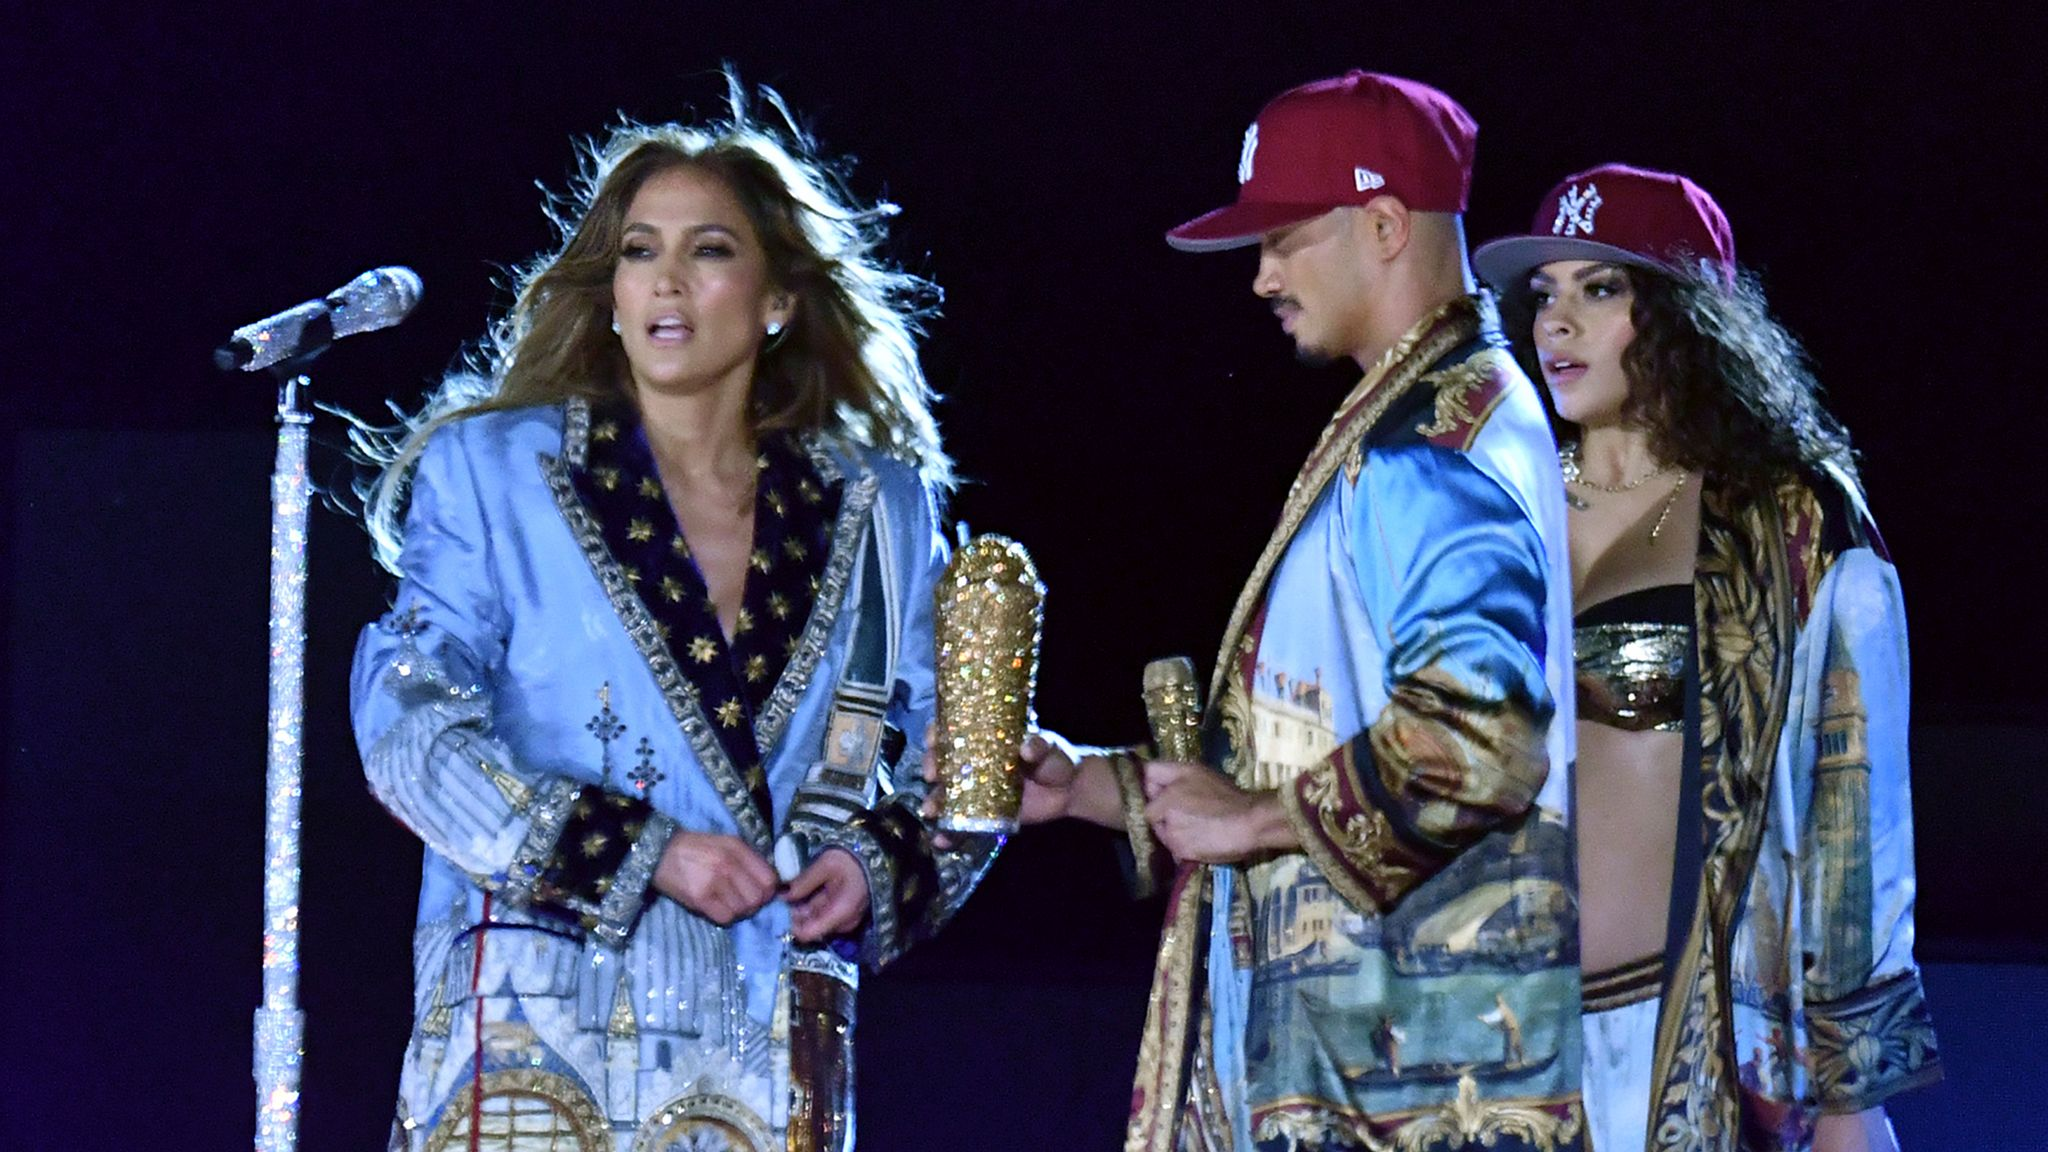 Jennifer Lopez appeared on stage with some bling as made up part of the star-studded line up in New York